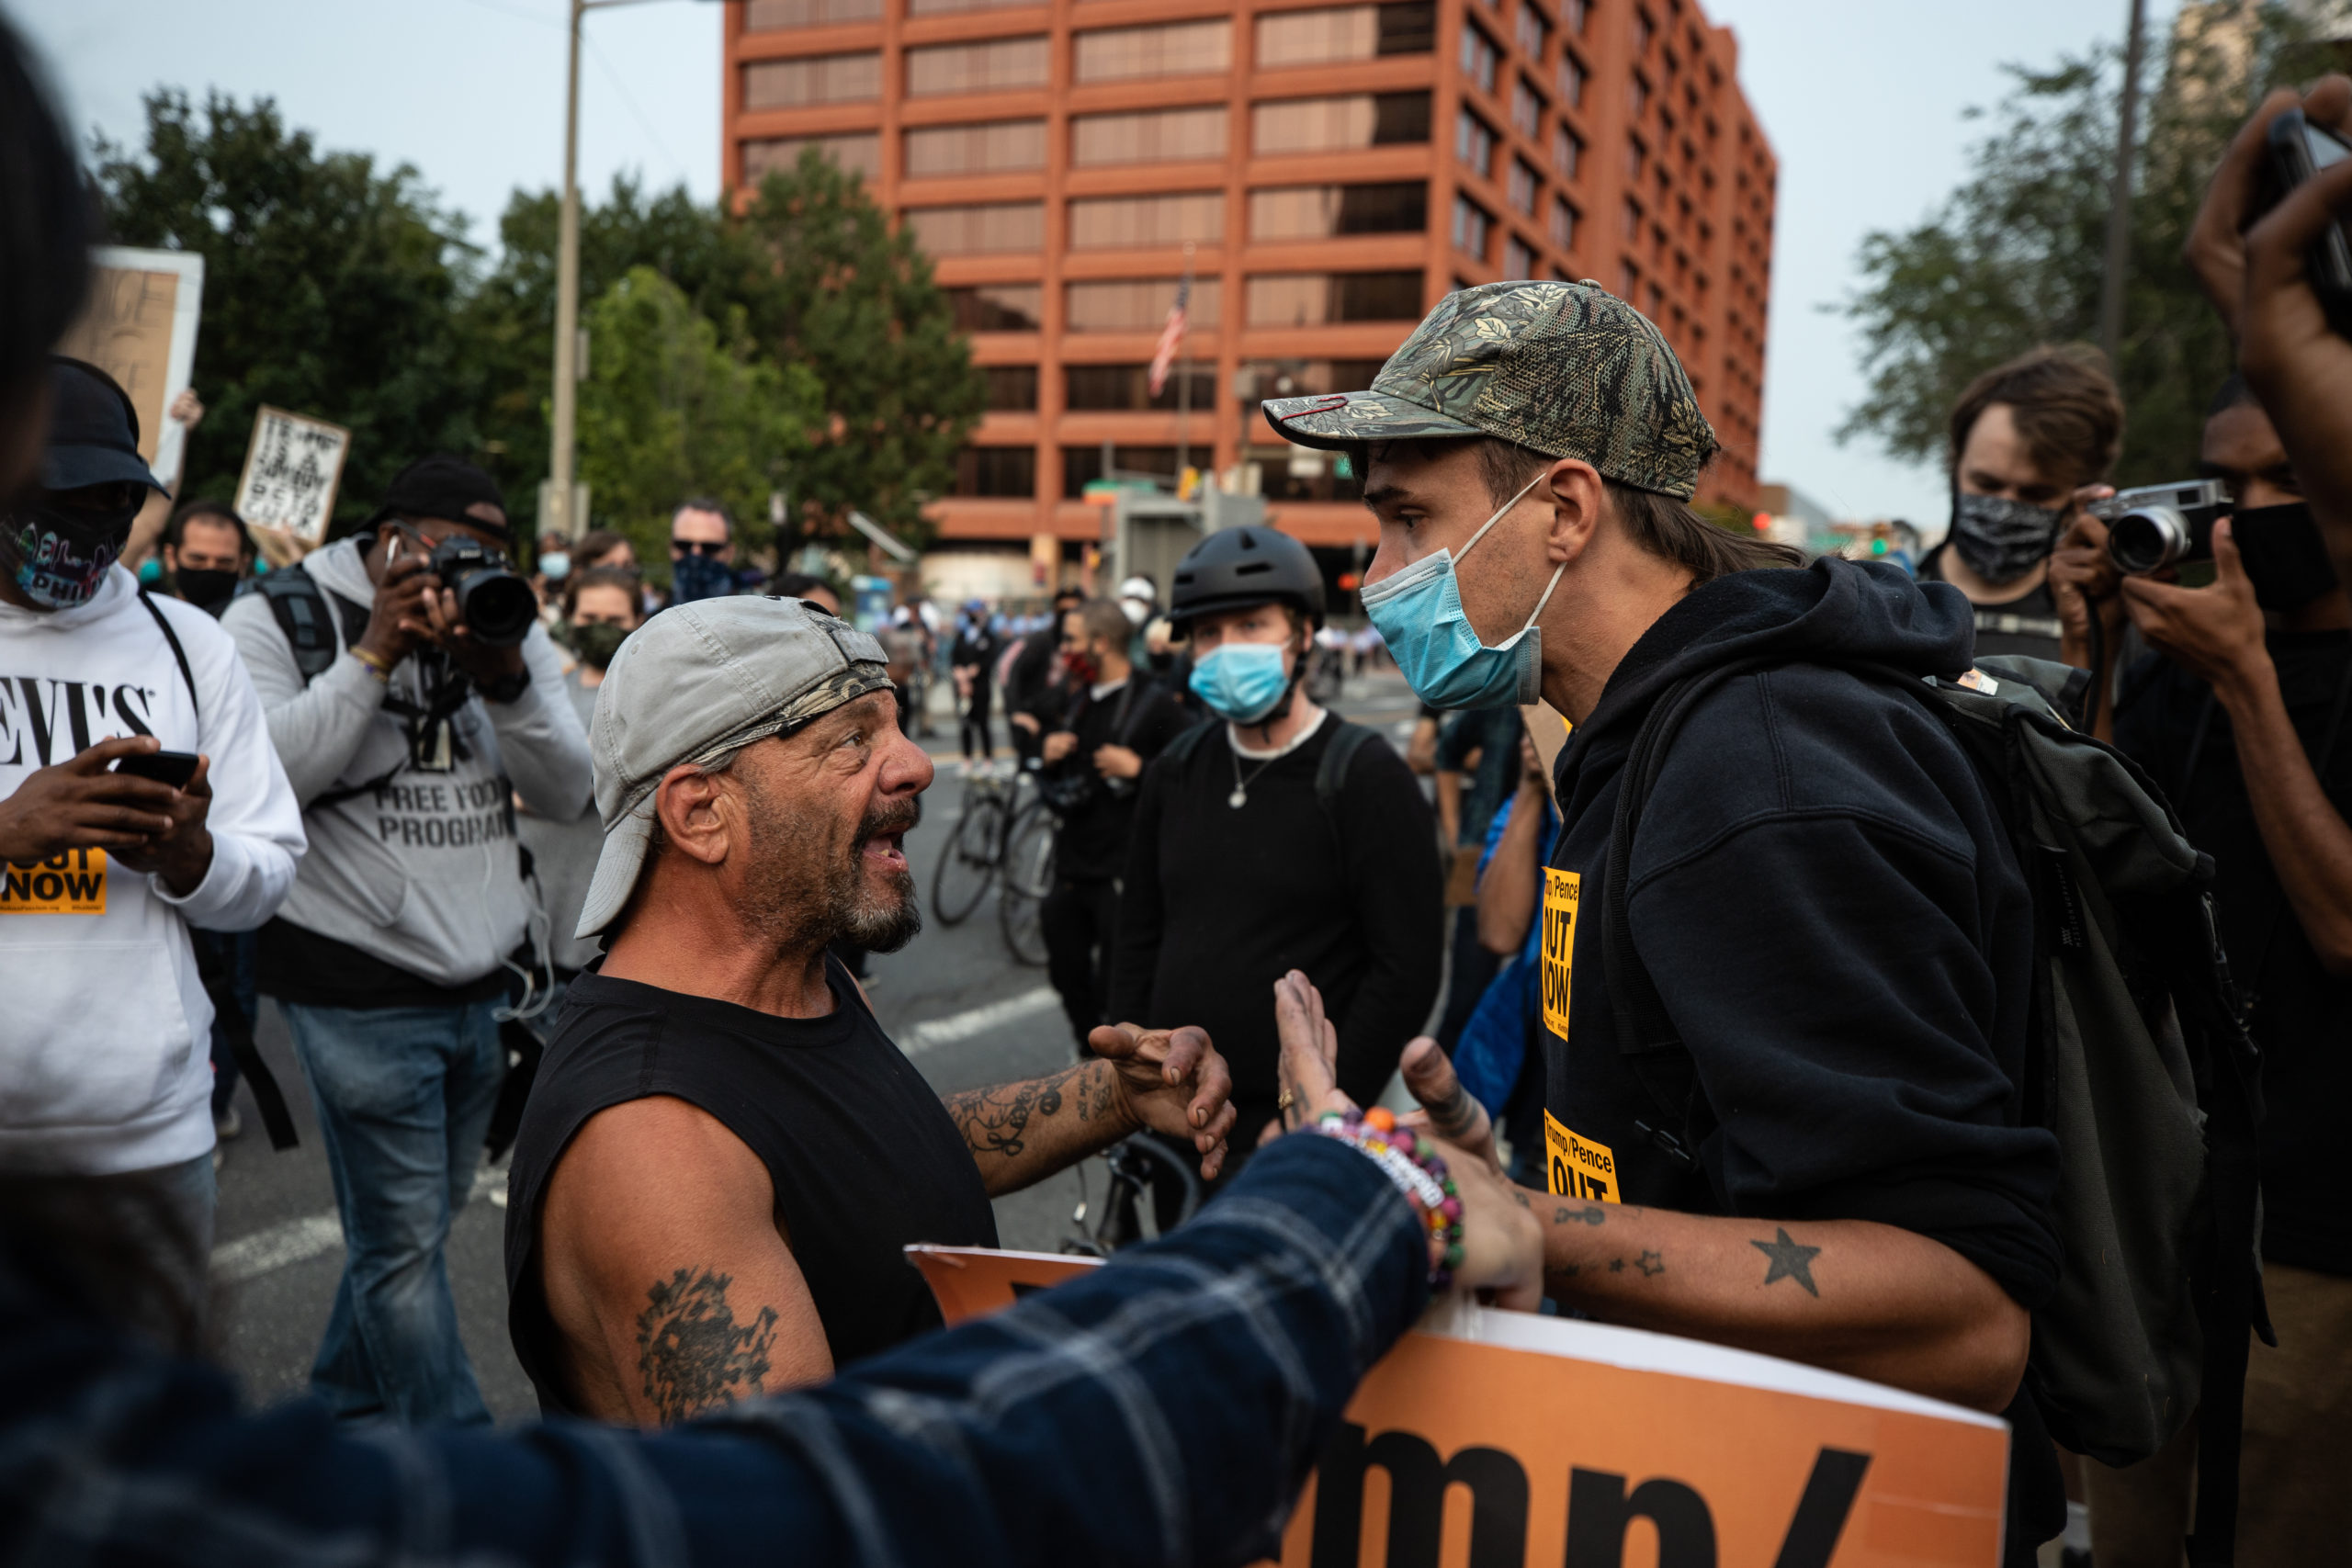 A man yells at a protester in Philadelphia, Pennsylvania on Sept. 15, 2020. (Photo: Kaylee Greenlee / DCNF)